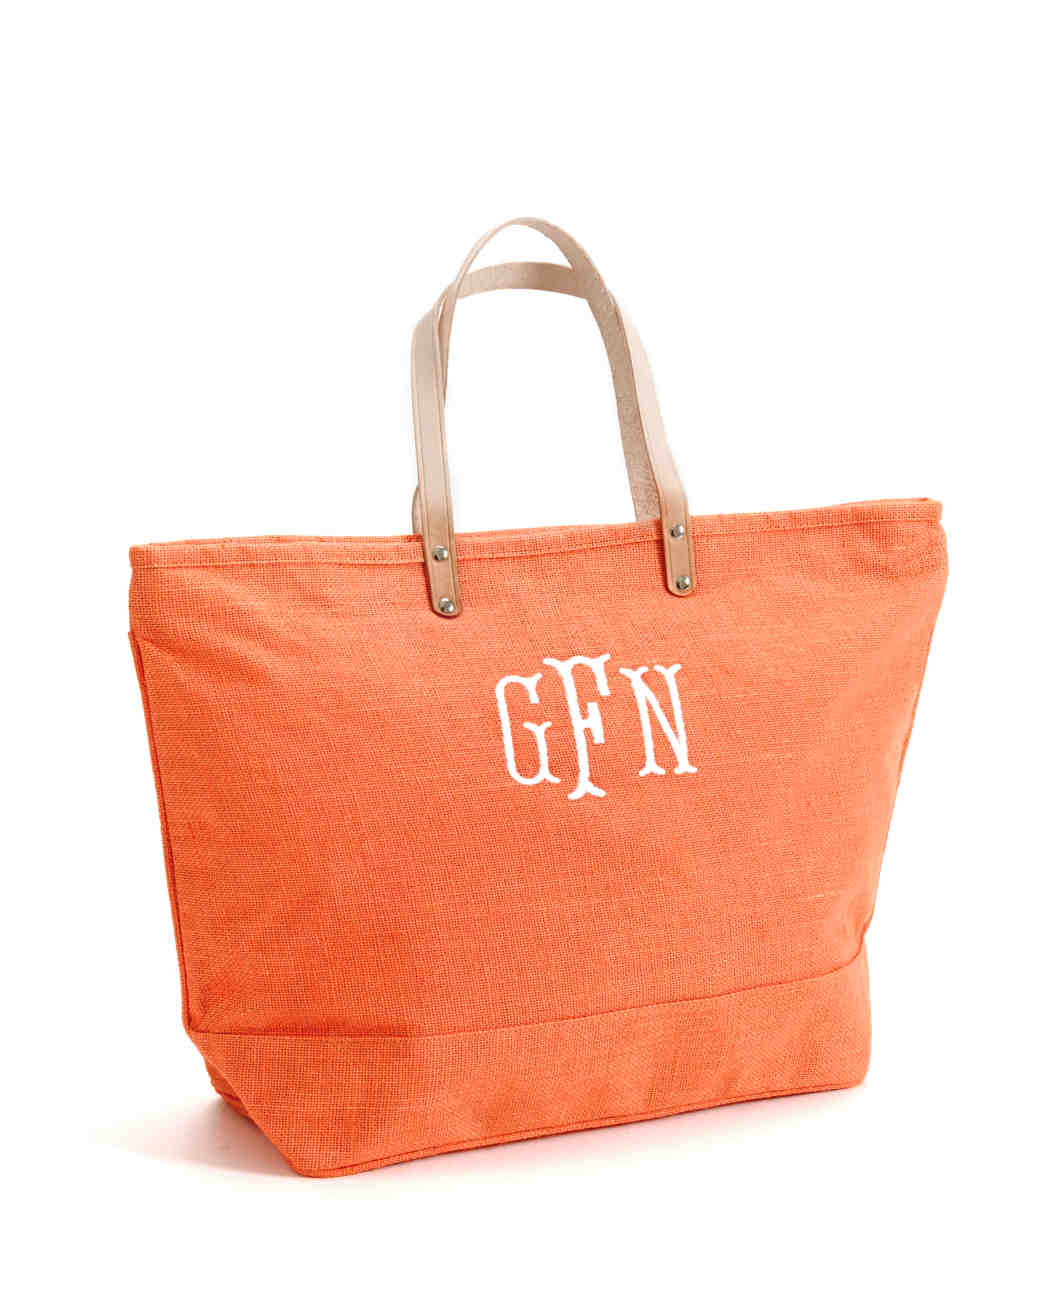 ask-your-bridesmaids-ballard-designs-monogrammed-tote-bag-coral-1014.jpg